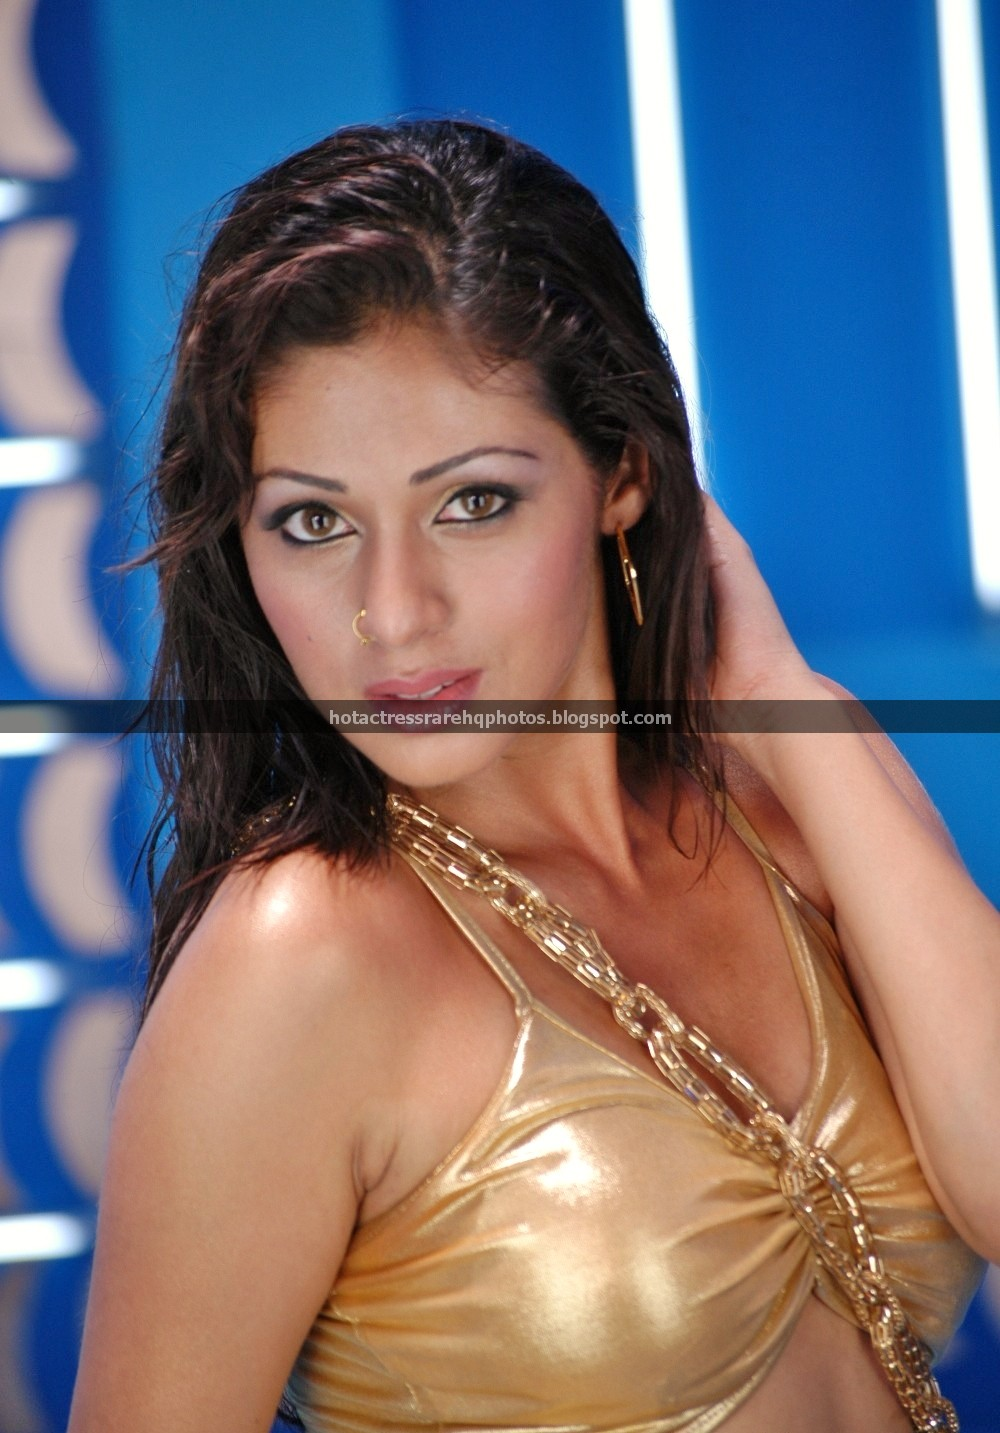 Hot Indian Actress Rar...